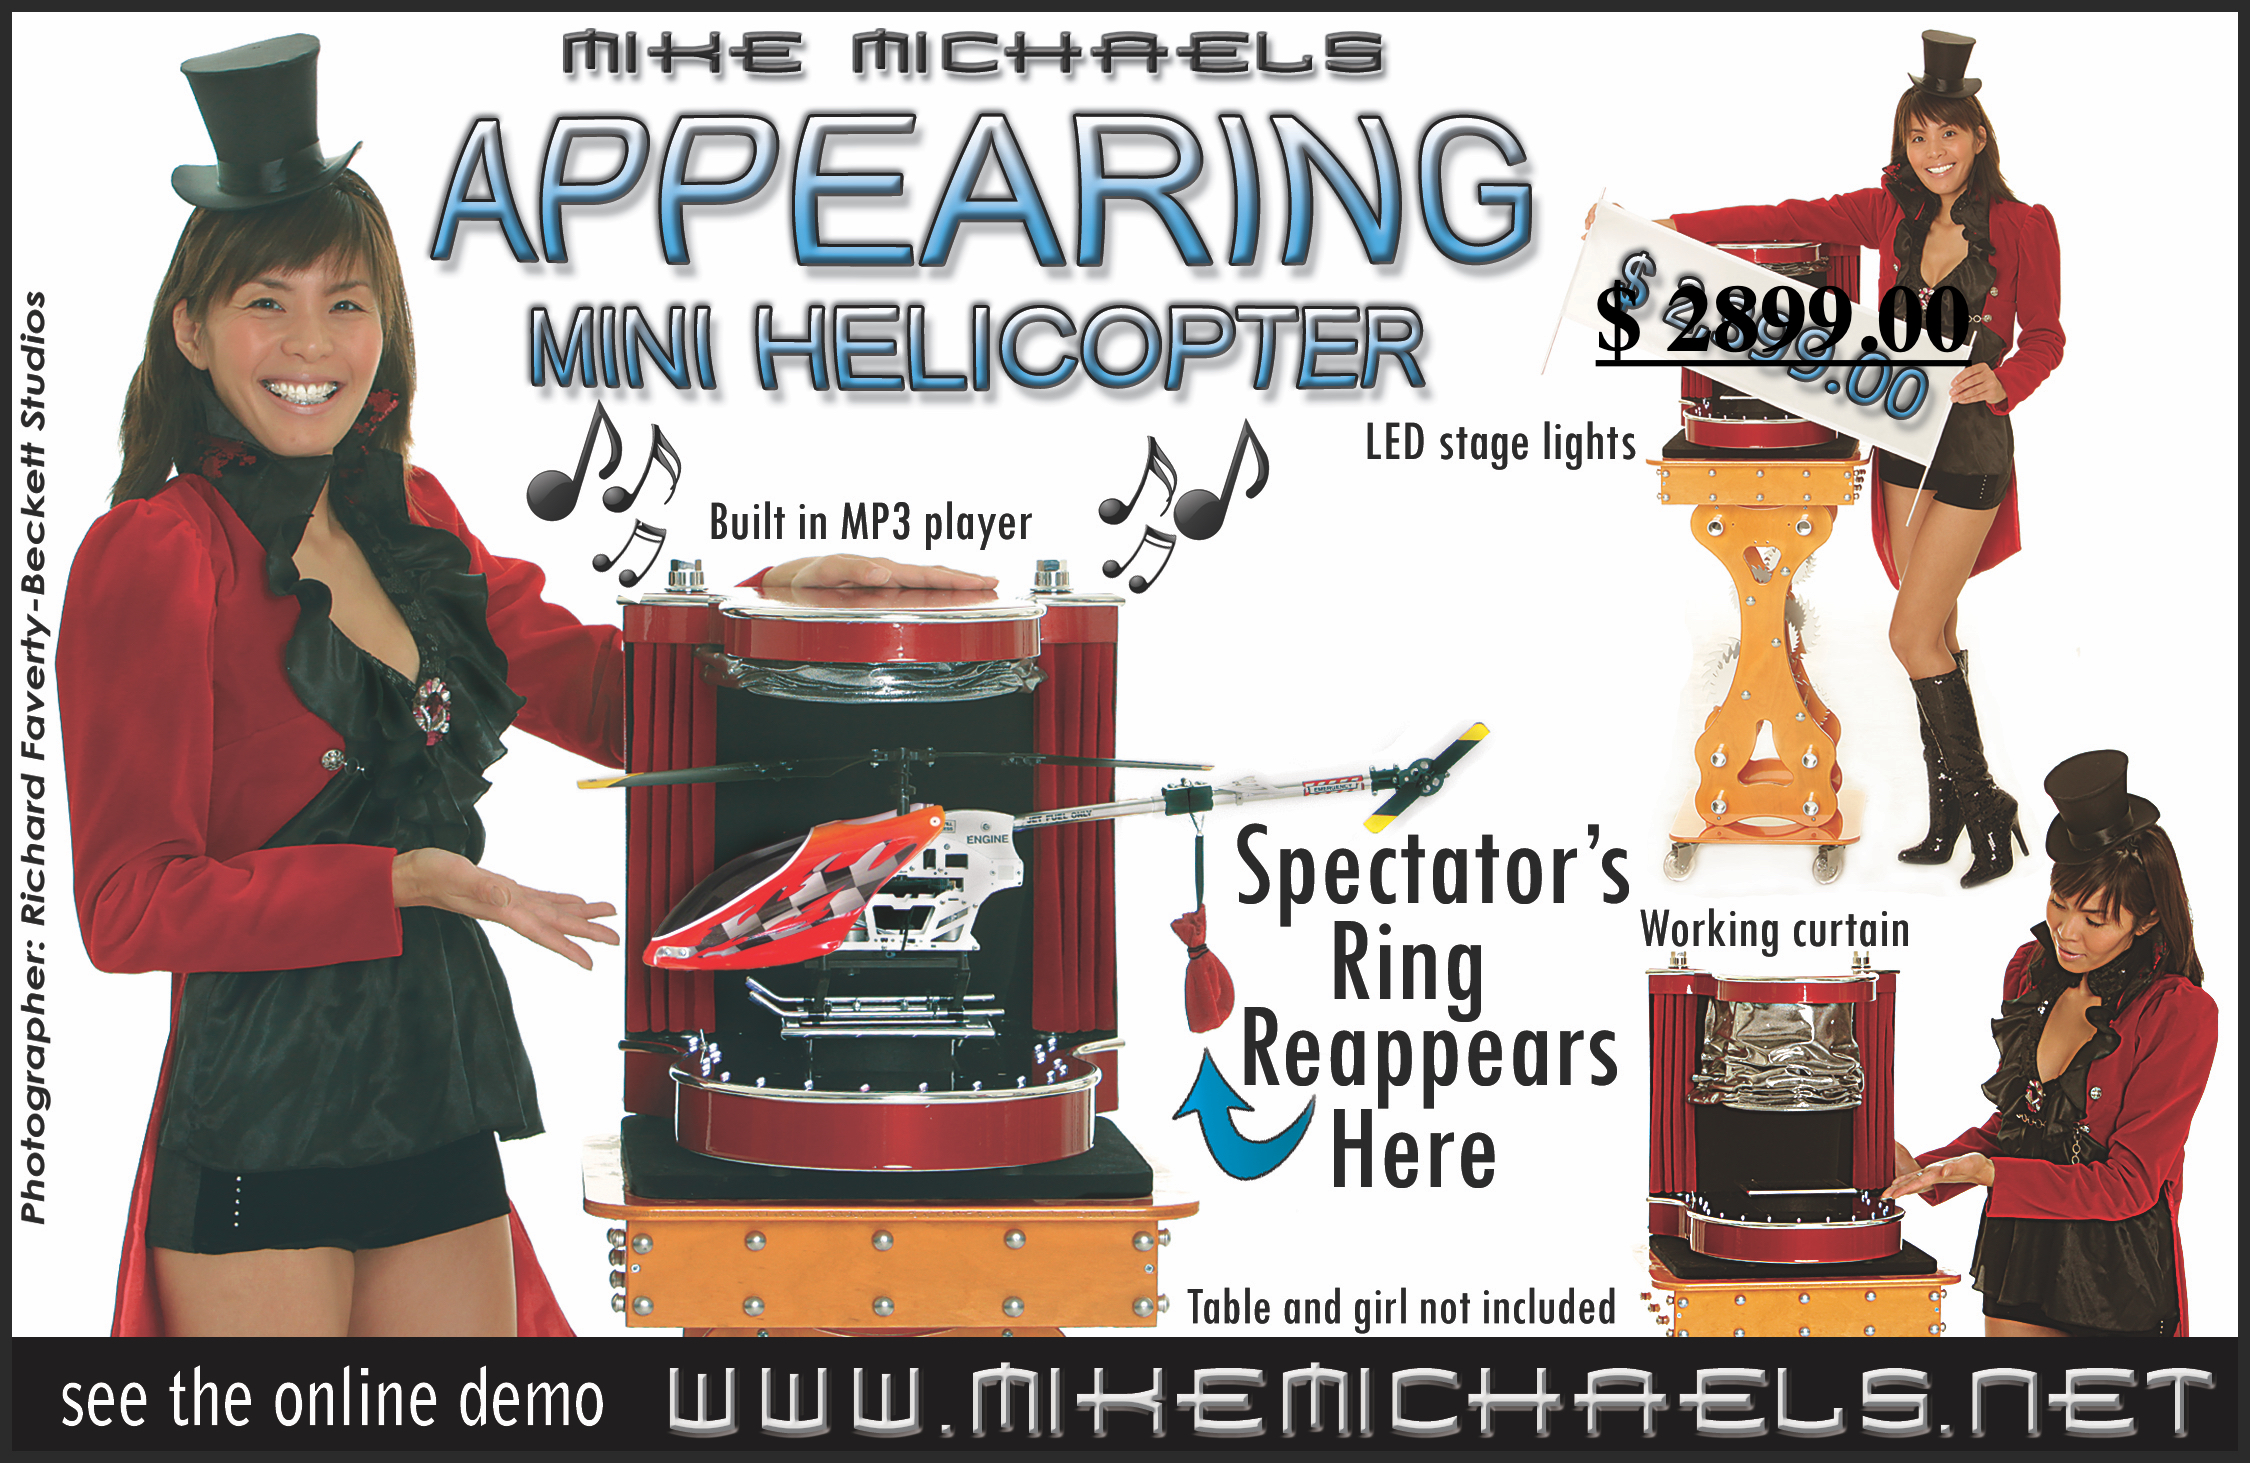 mini helicopter ad new price July 2016.jpg